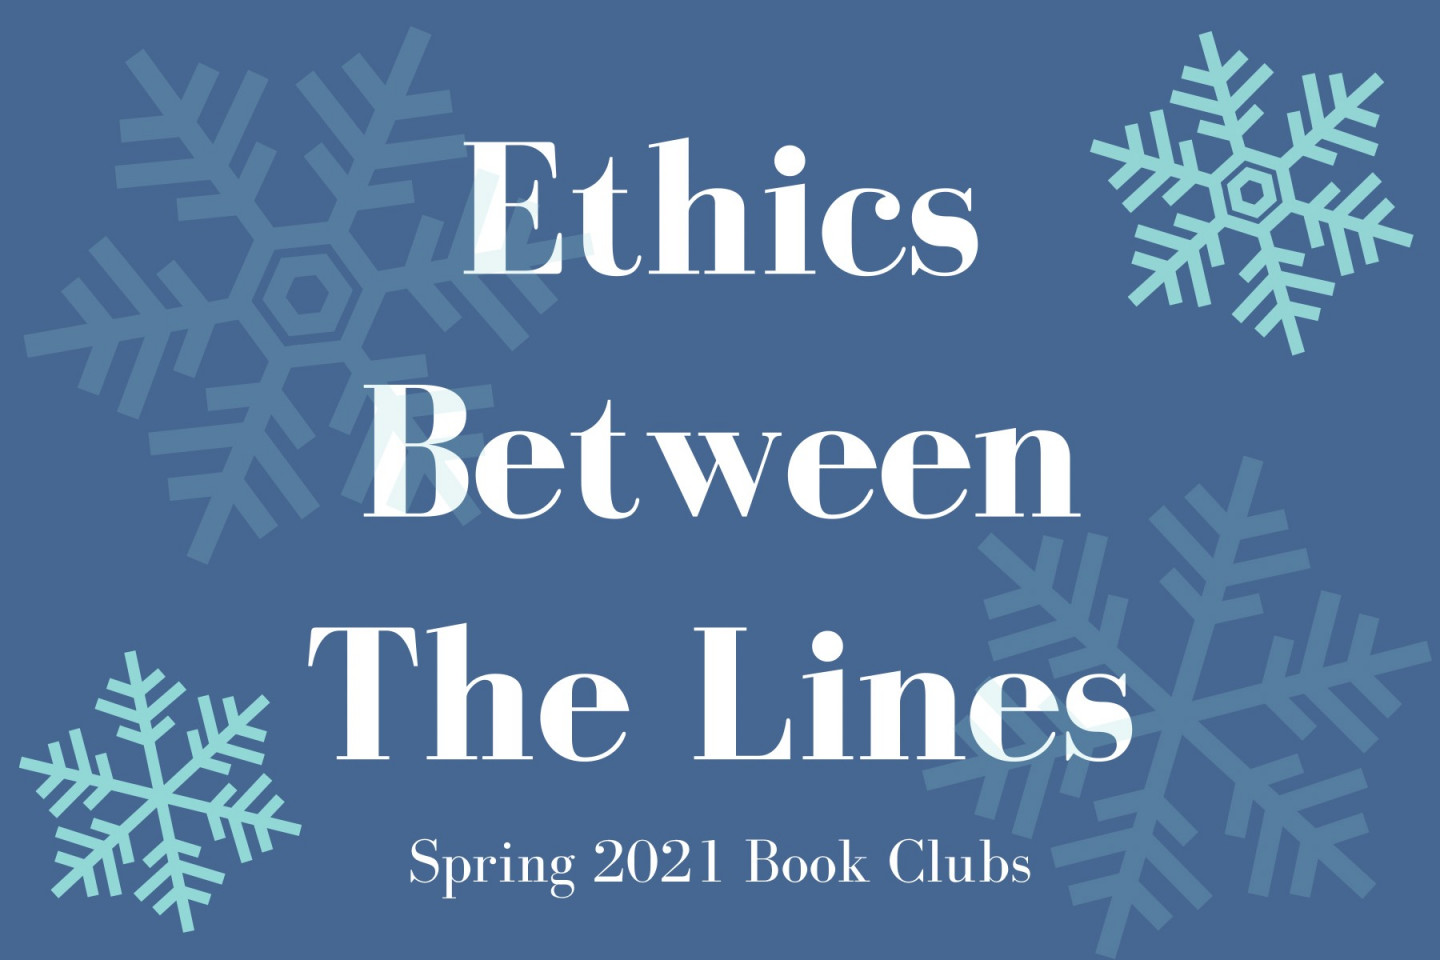 Ethics Between the Lines Spring 2021 Book Clubs,